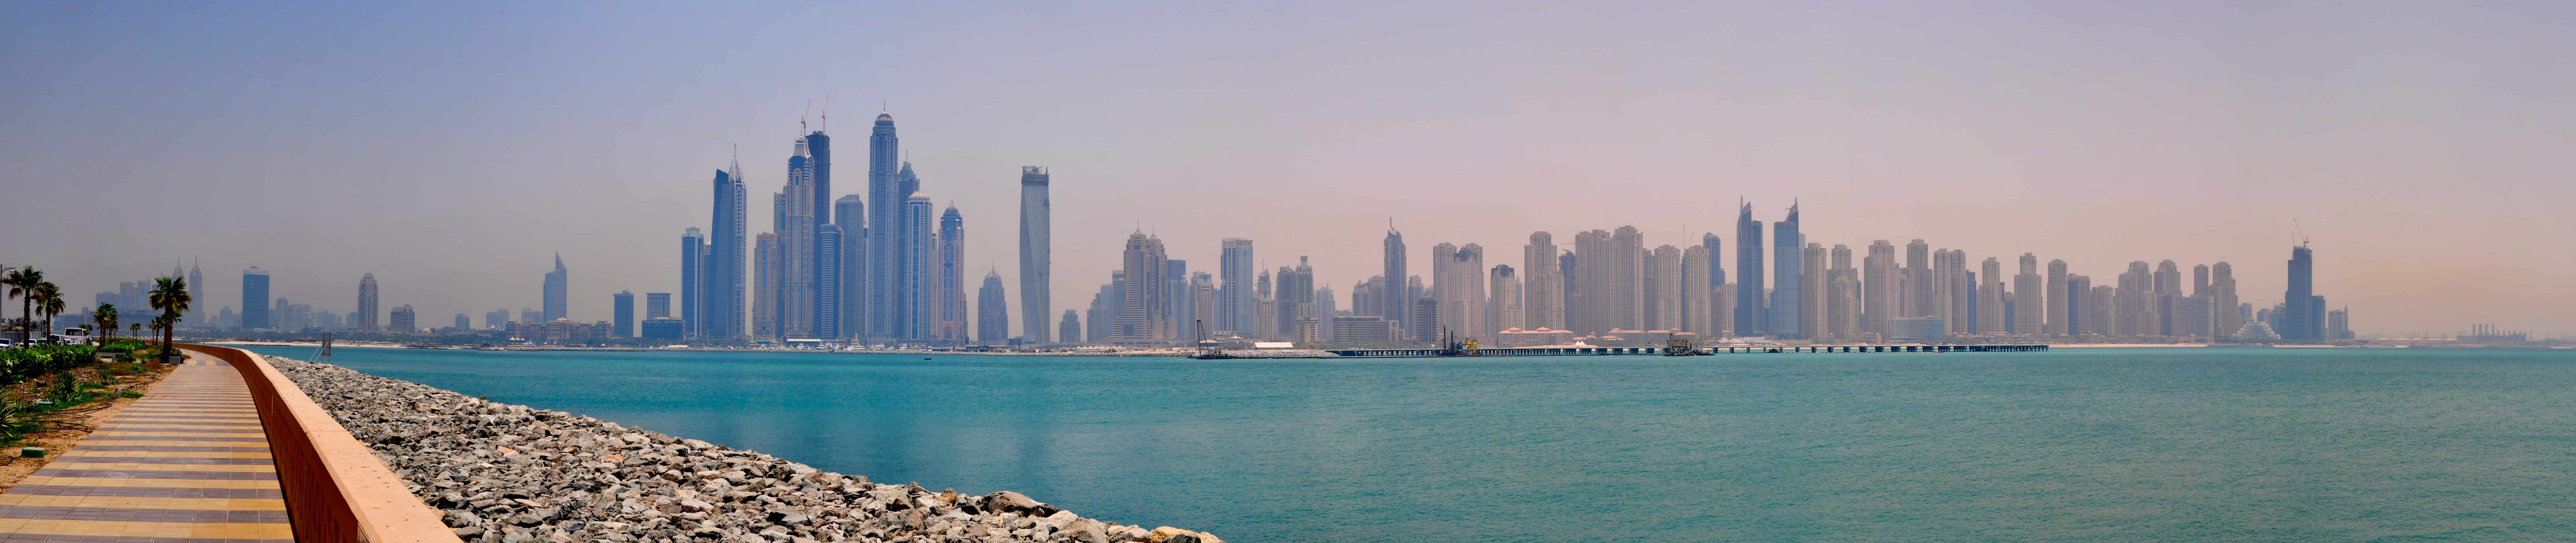 Dubai travel tips for affordable luxury travellers